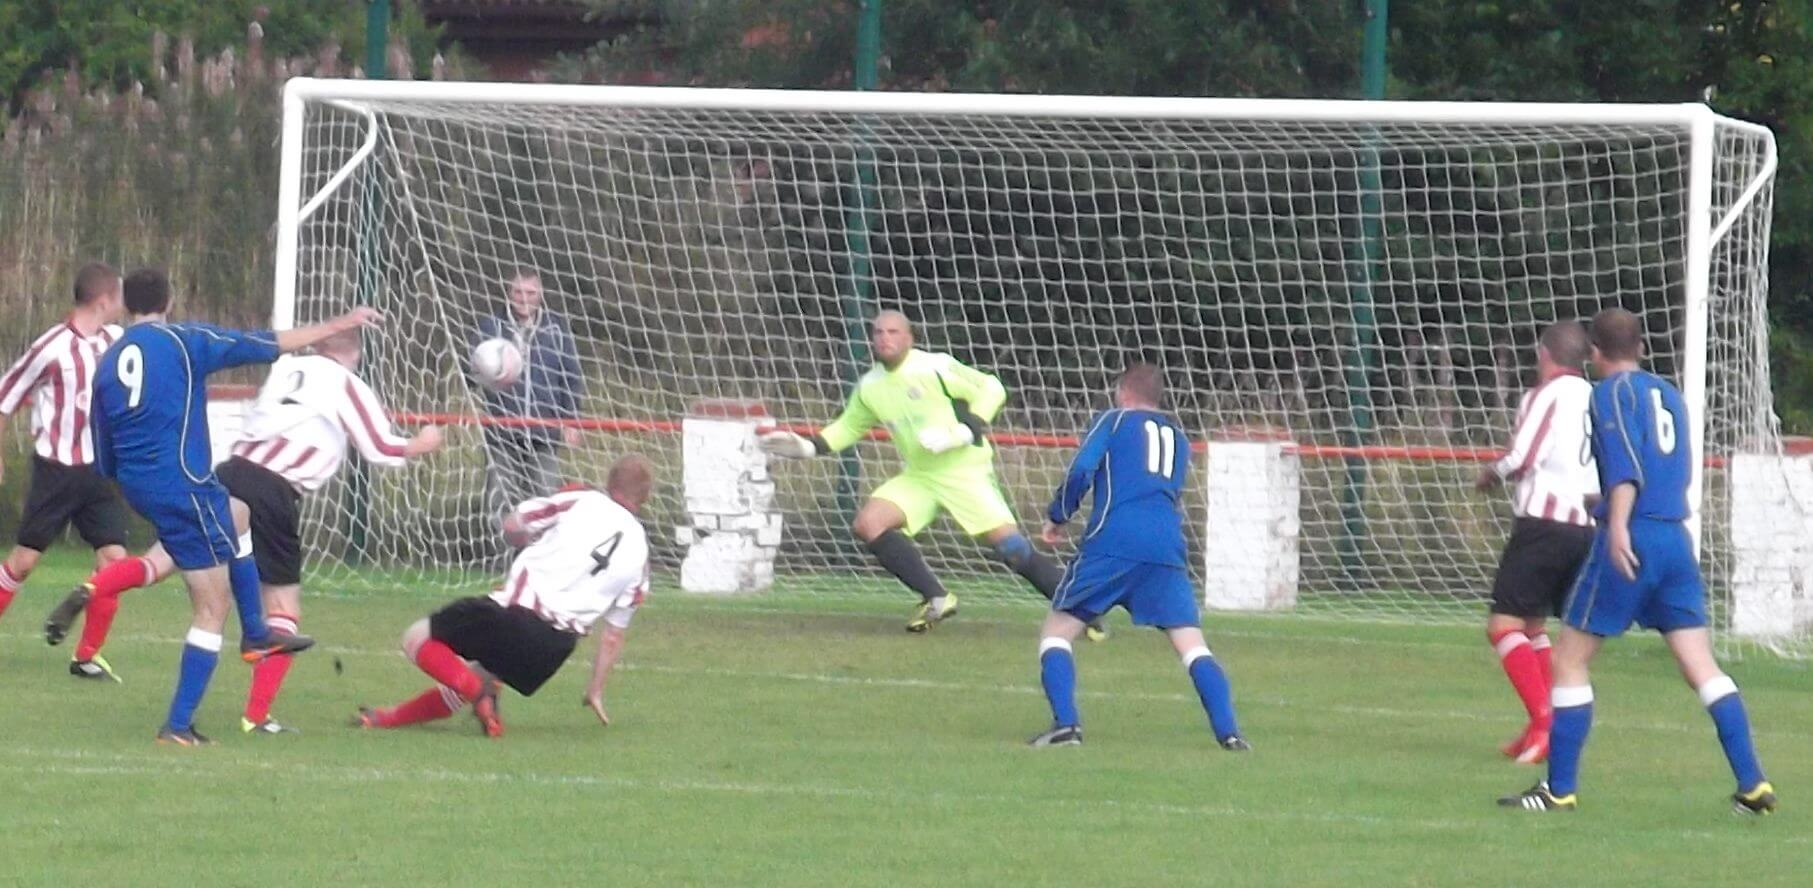 Davie McEwan dives to produce wonder save